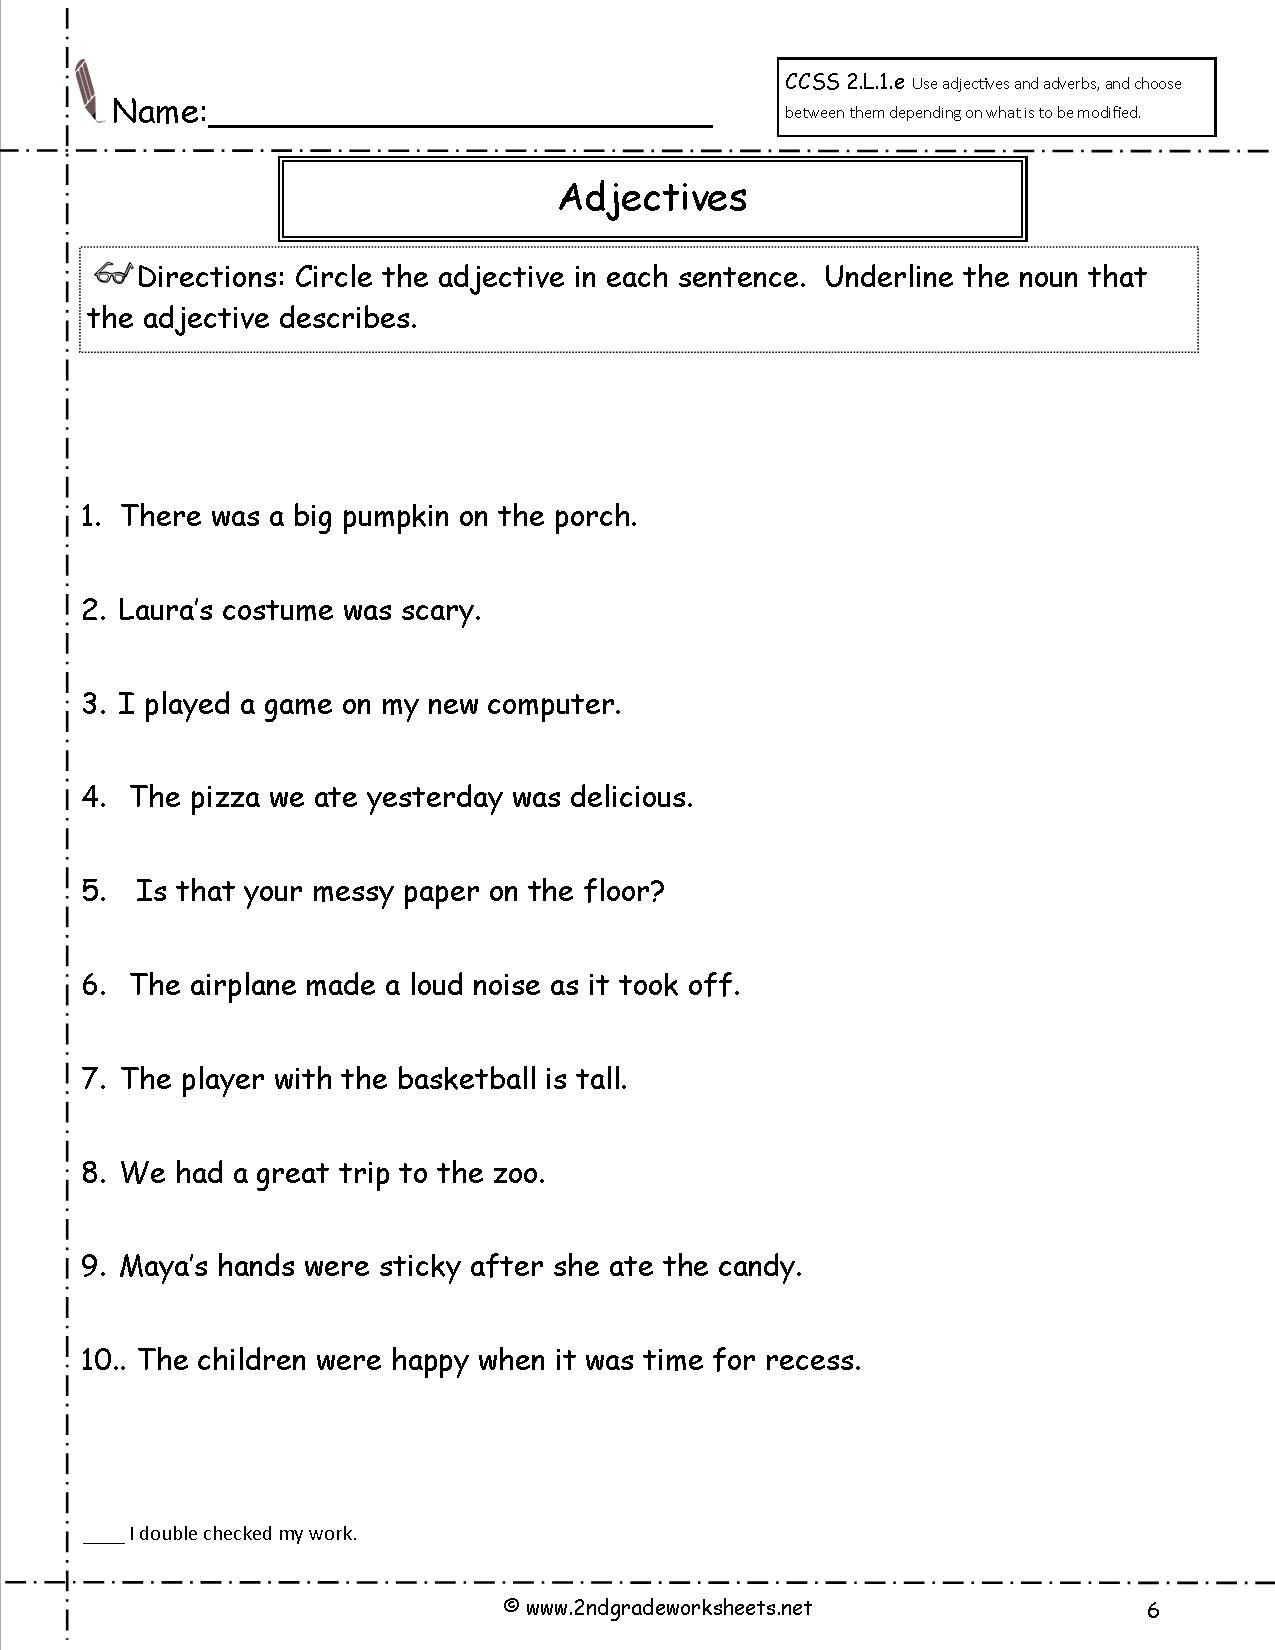 Adjective Worksheets 2nd Grade Looking for Tutor Anime Girl Coloring Pages Adjectives